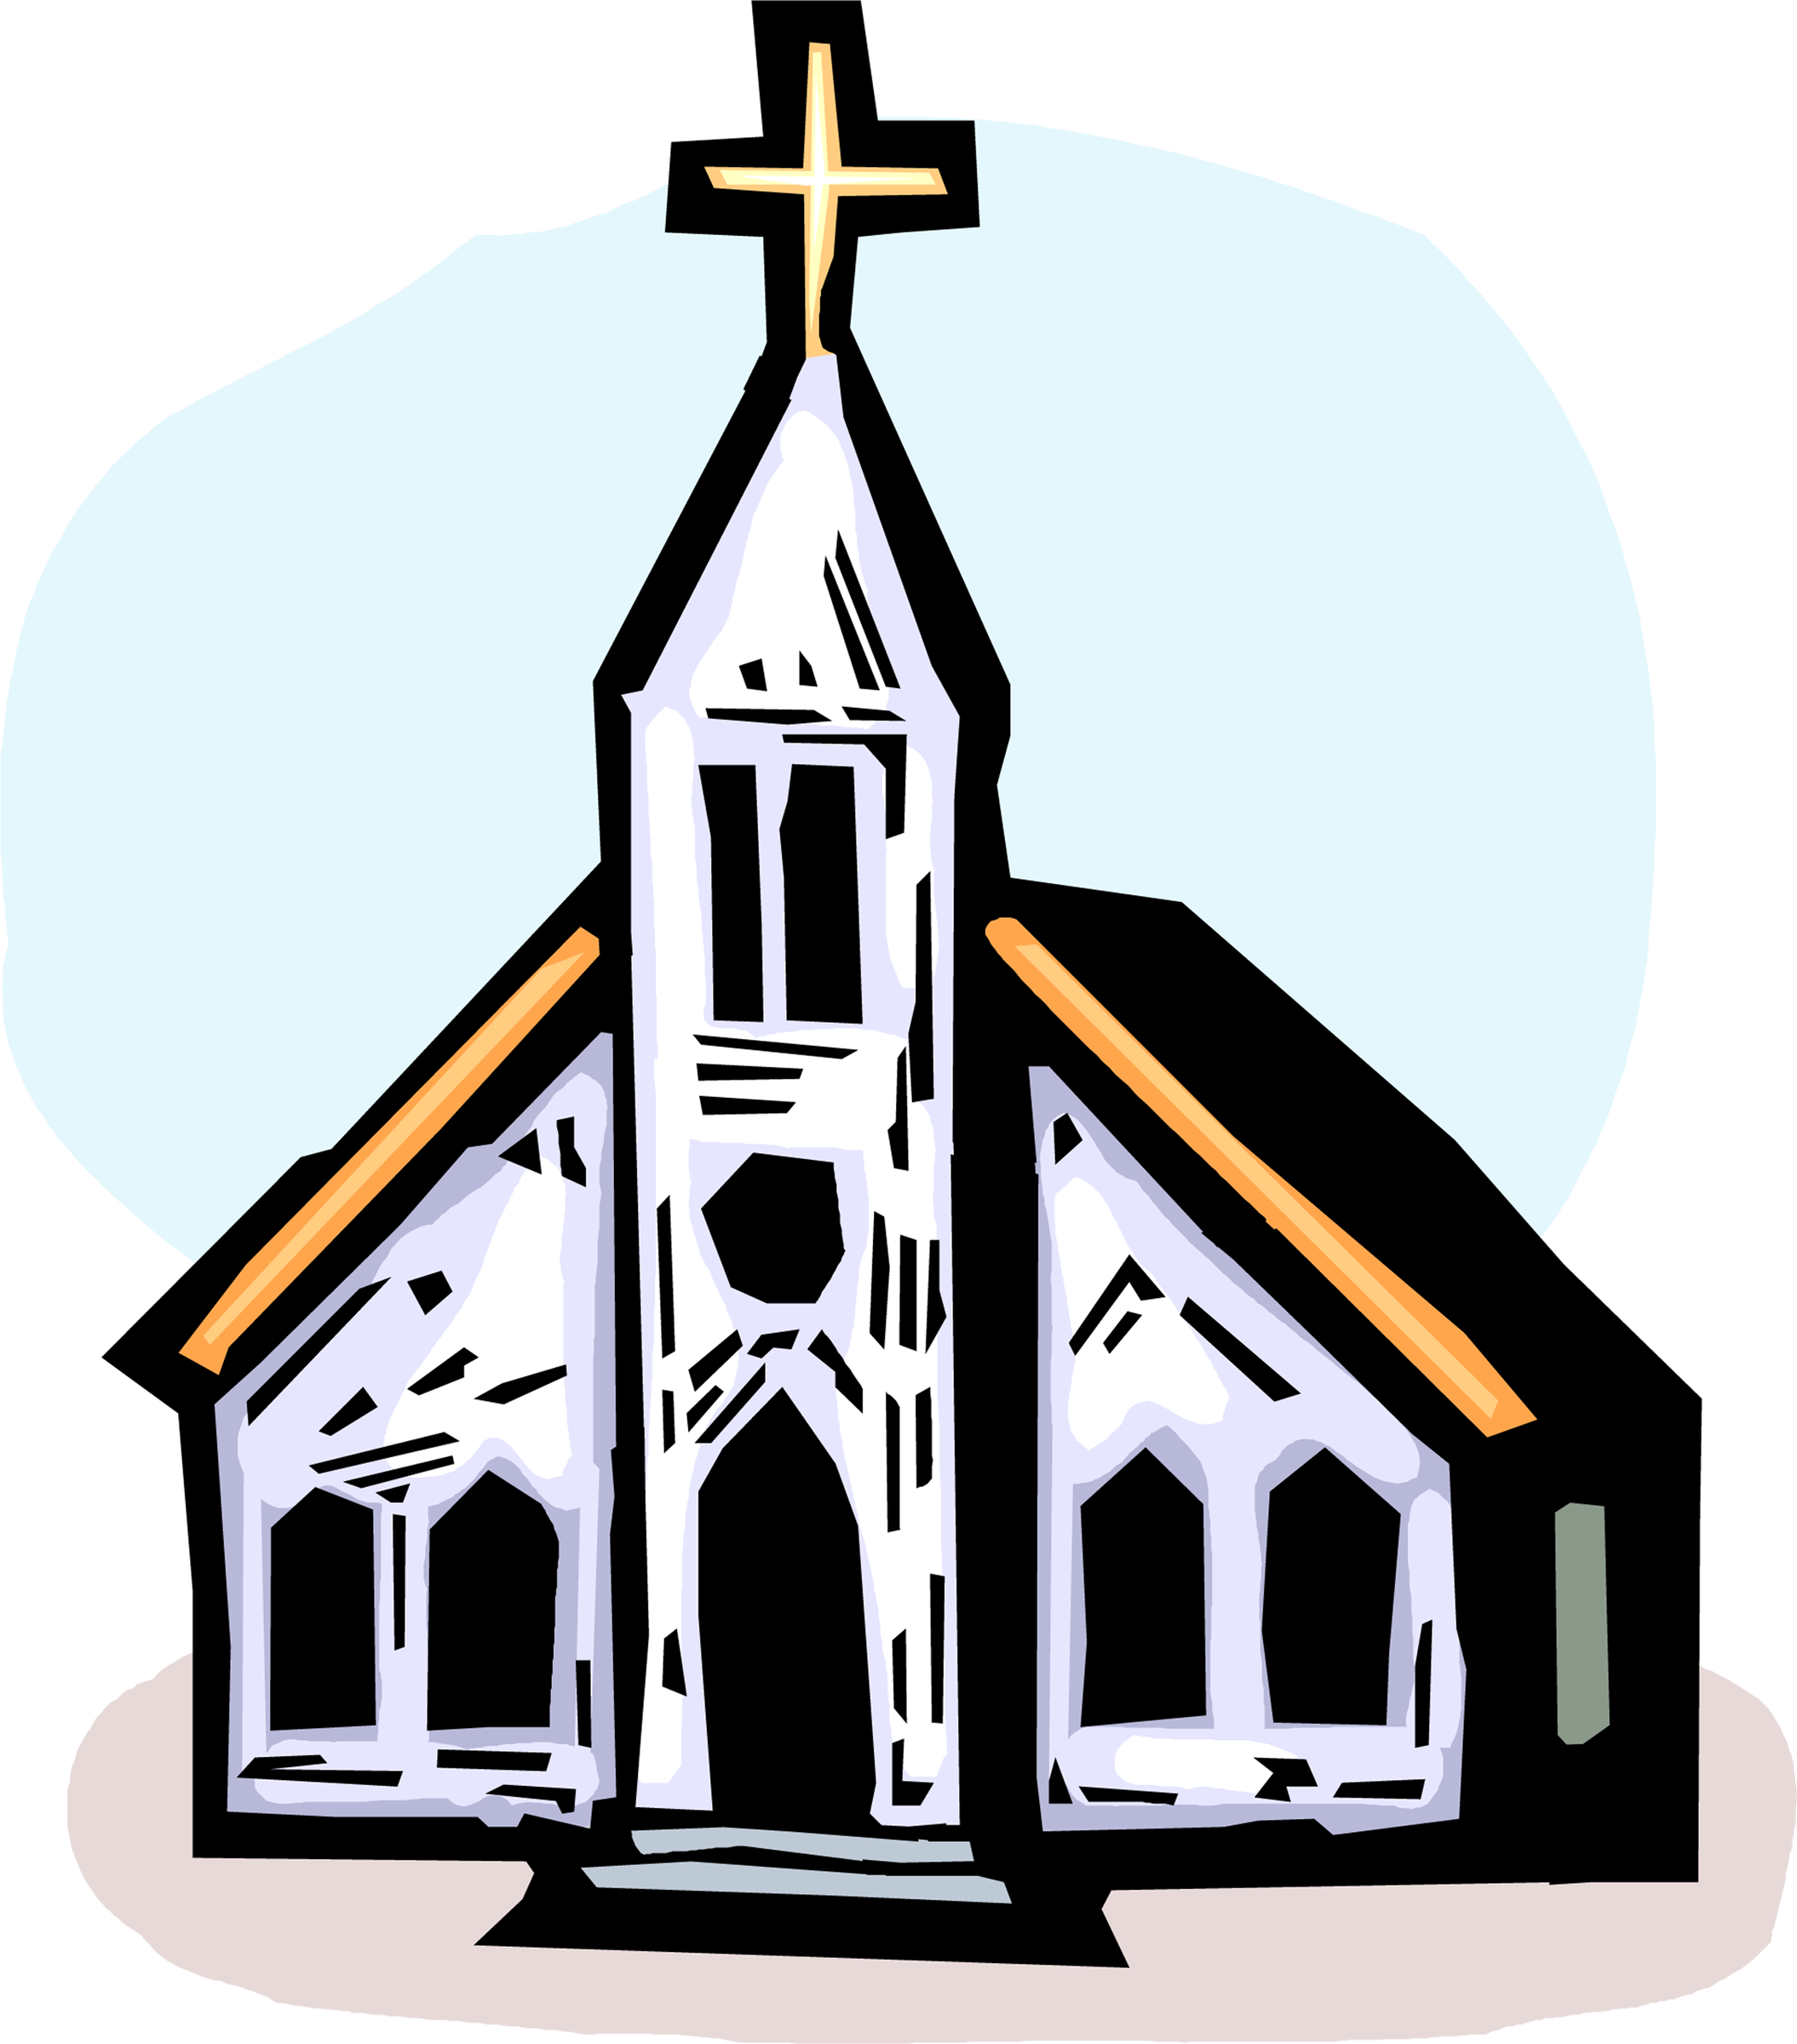 Church open house clipart picture transparent library Construction Project - Diary of a Parish Priest picture transparent library